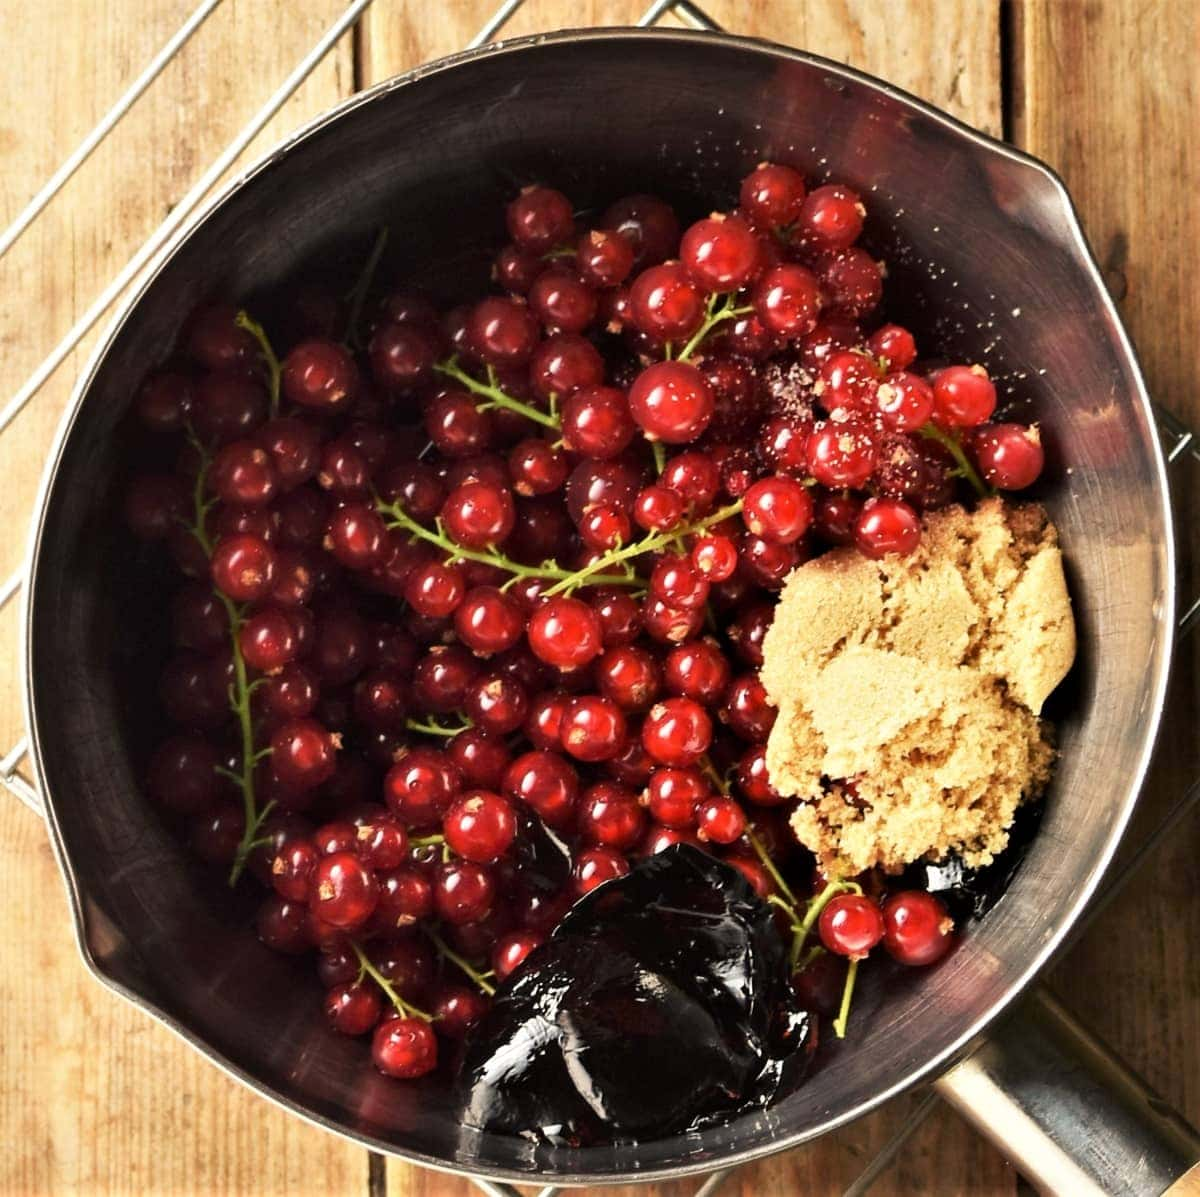 Redcurrants with stems, brown sugar and jelly in saucepan.